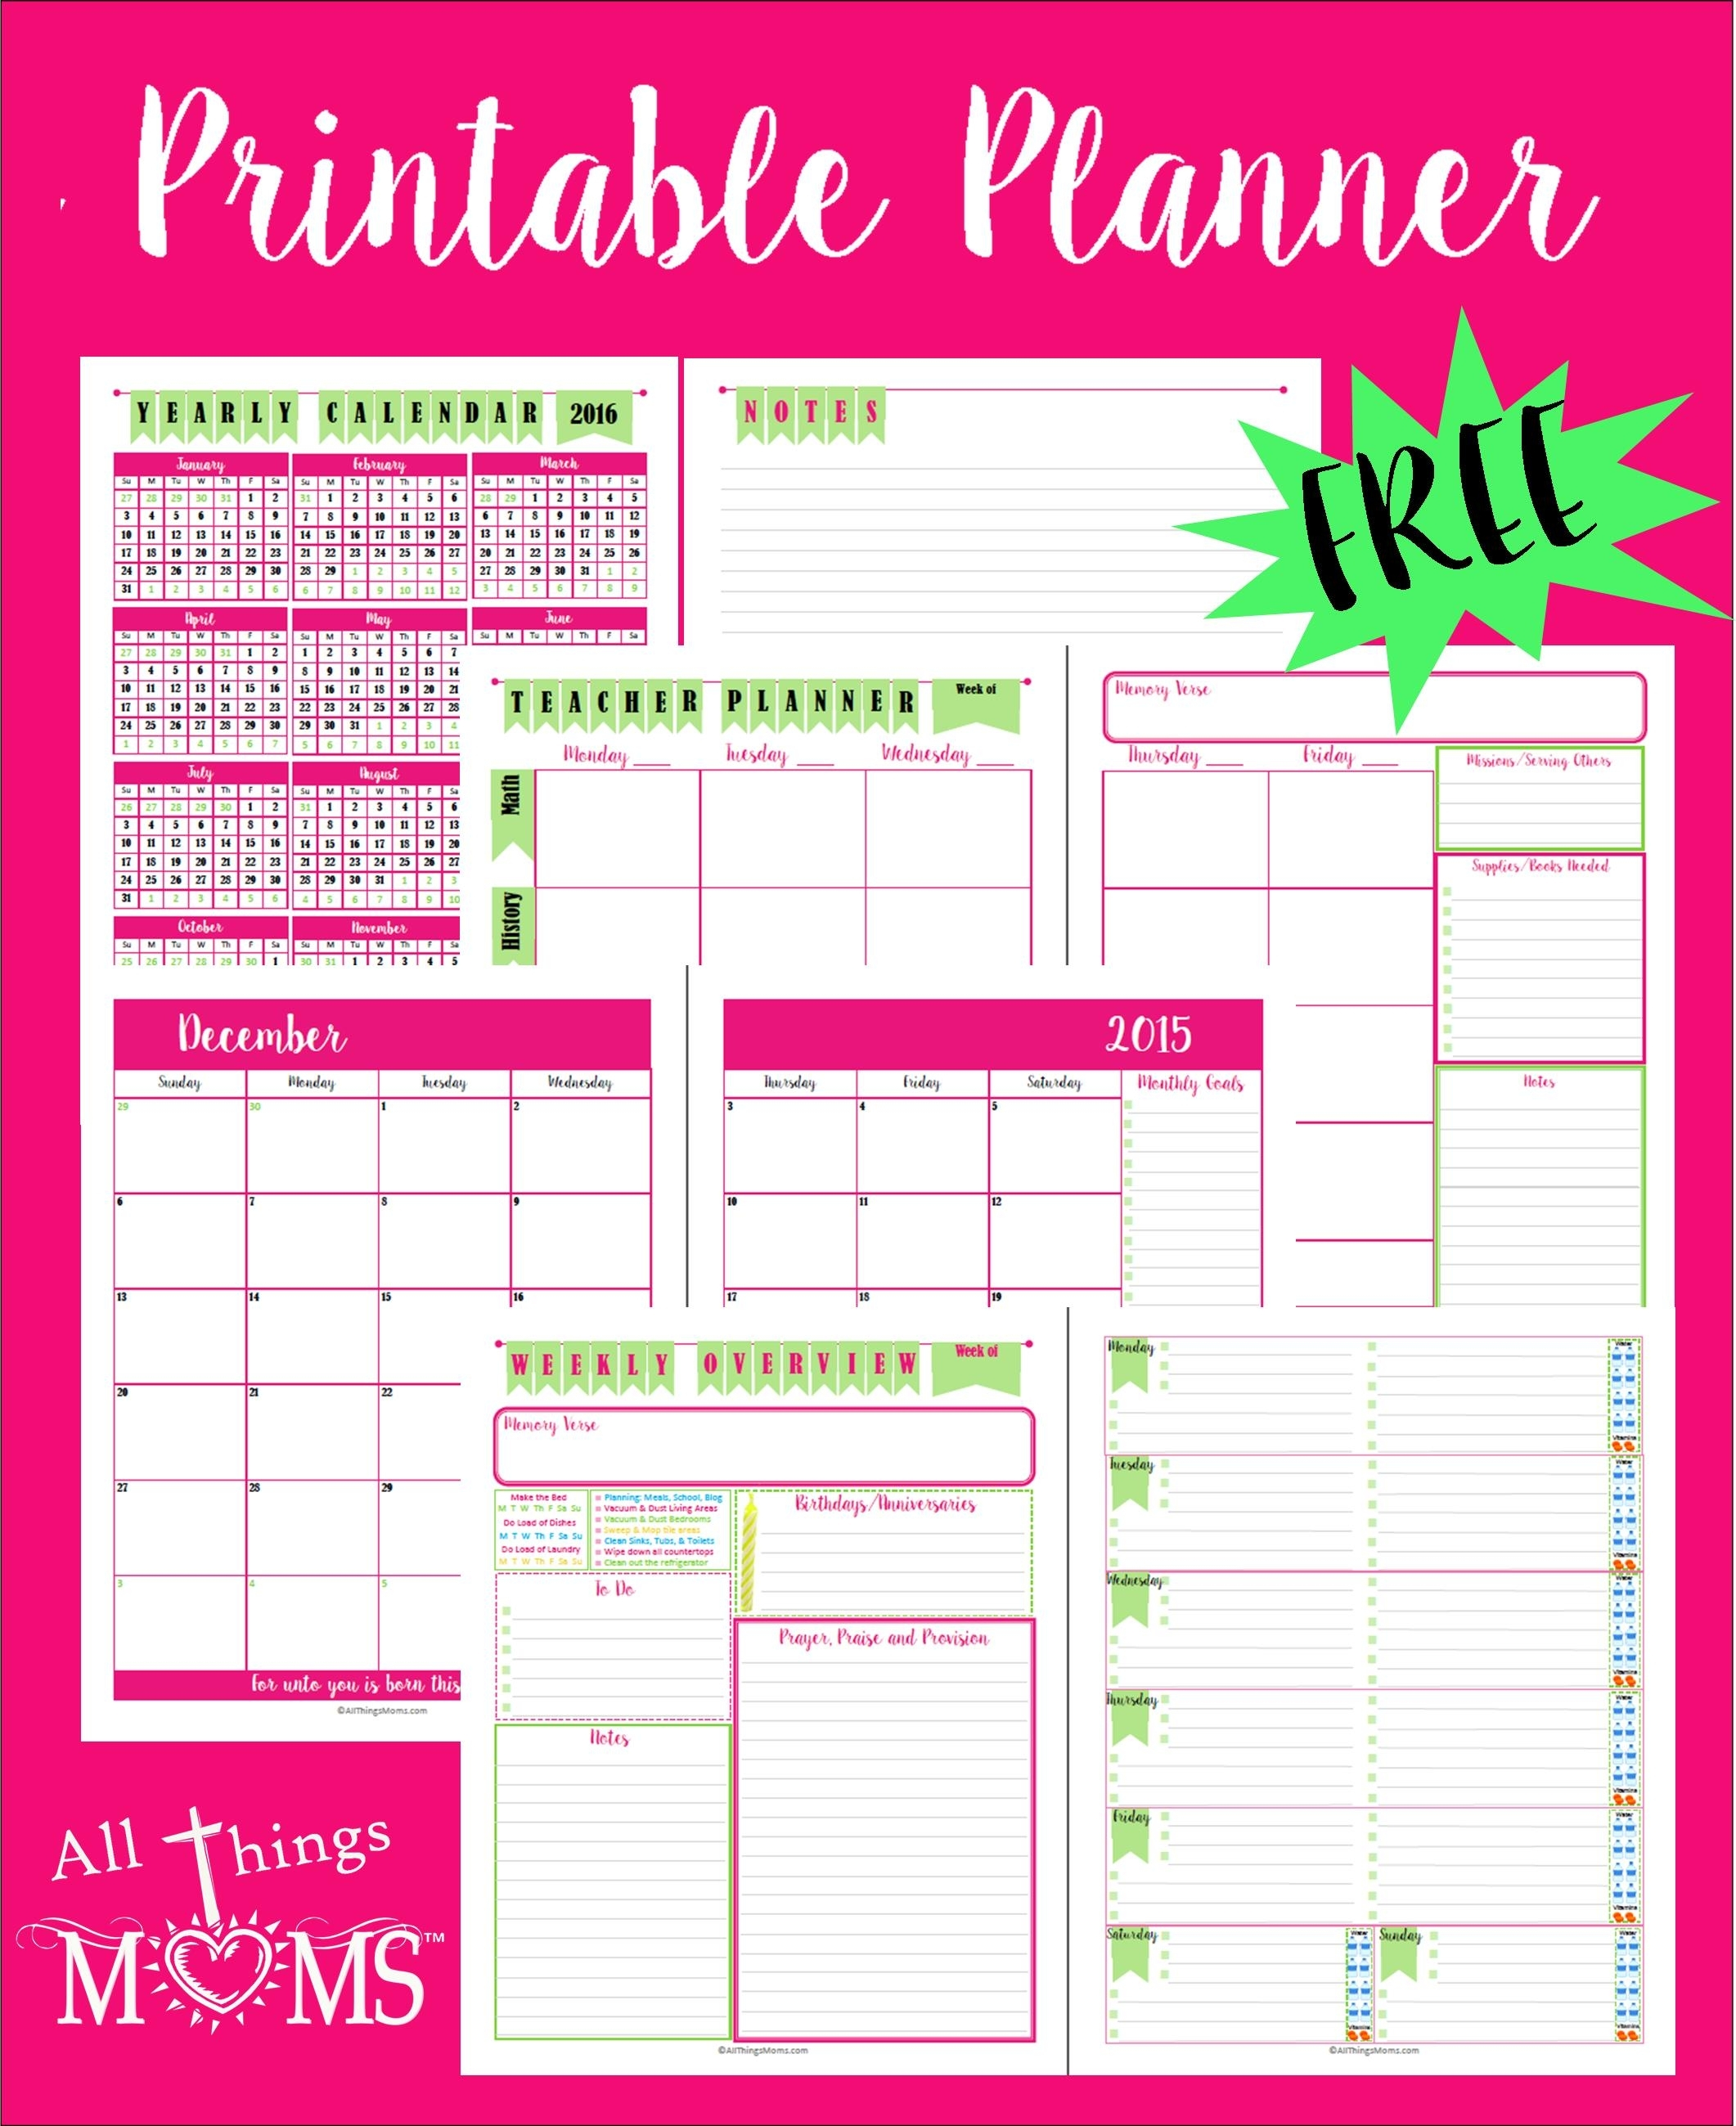 Printable Planner - All Things Moms